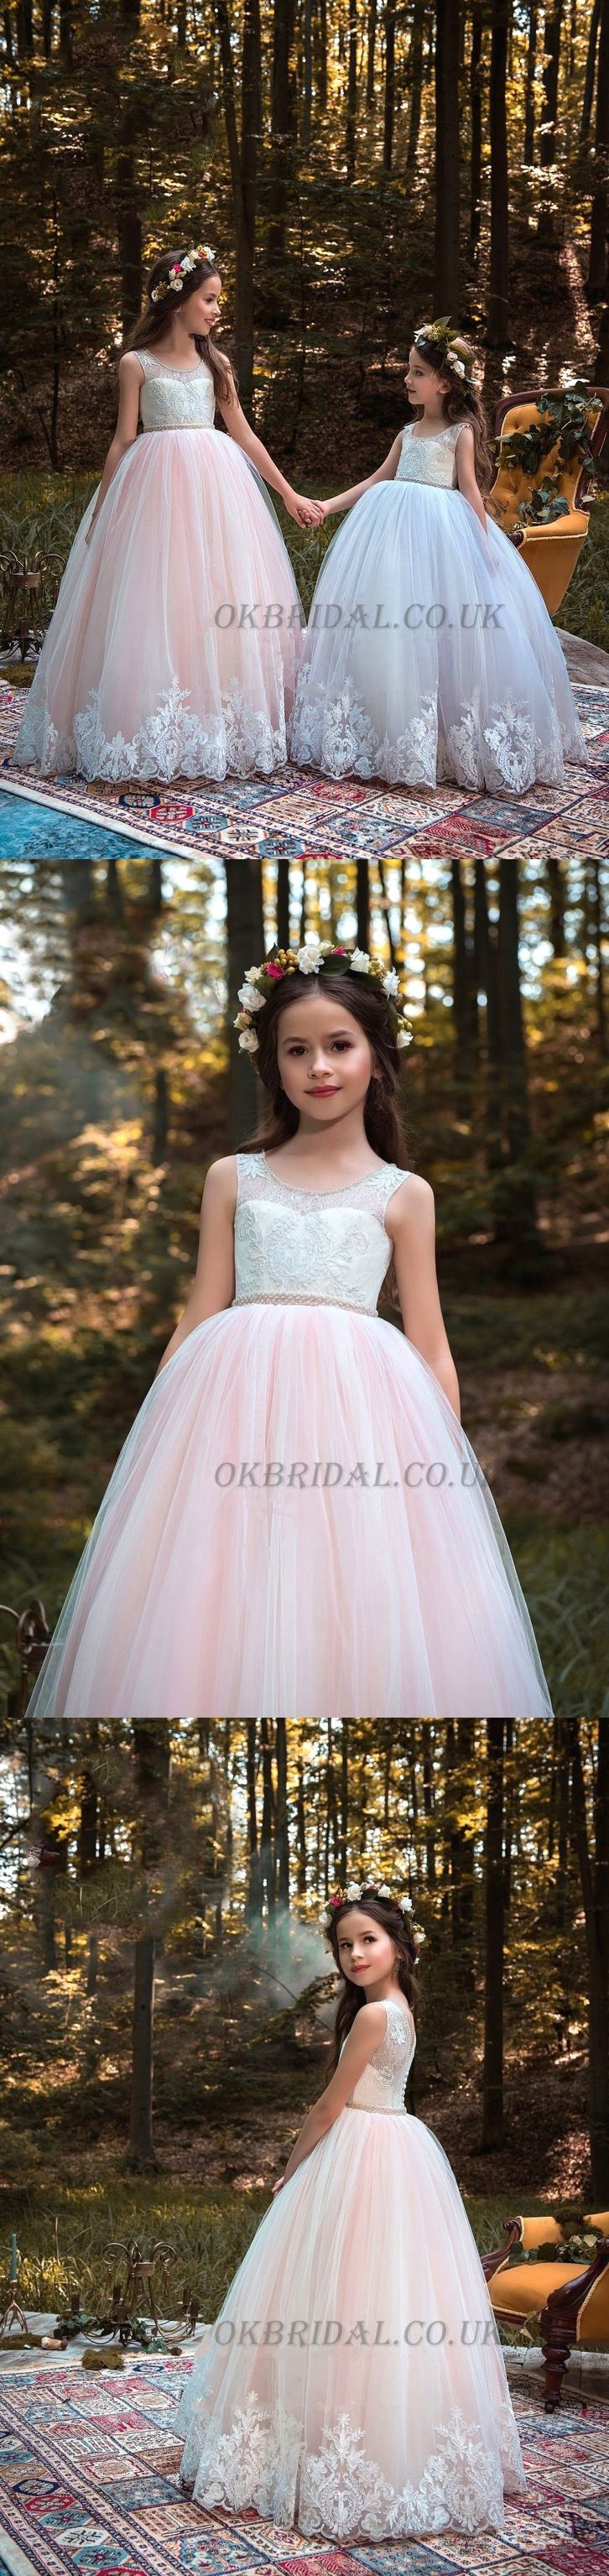 Round Neckline Lace Top Tulle Popular Applique Flower Girl Dresses